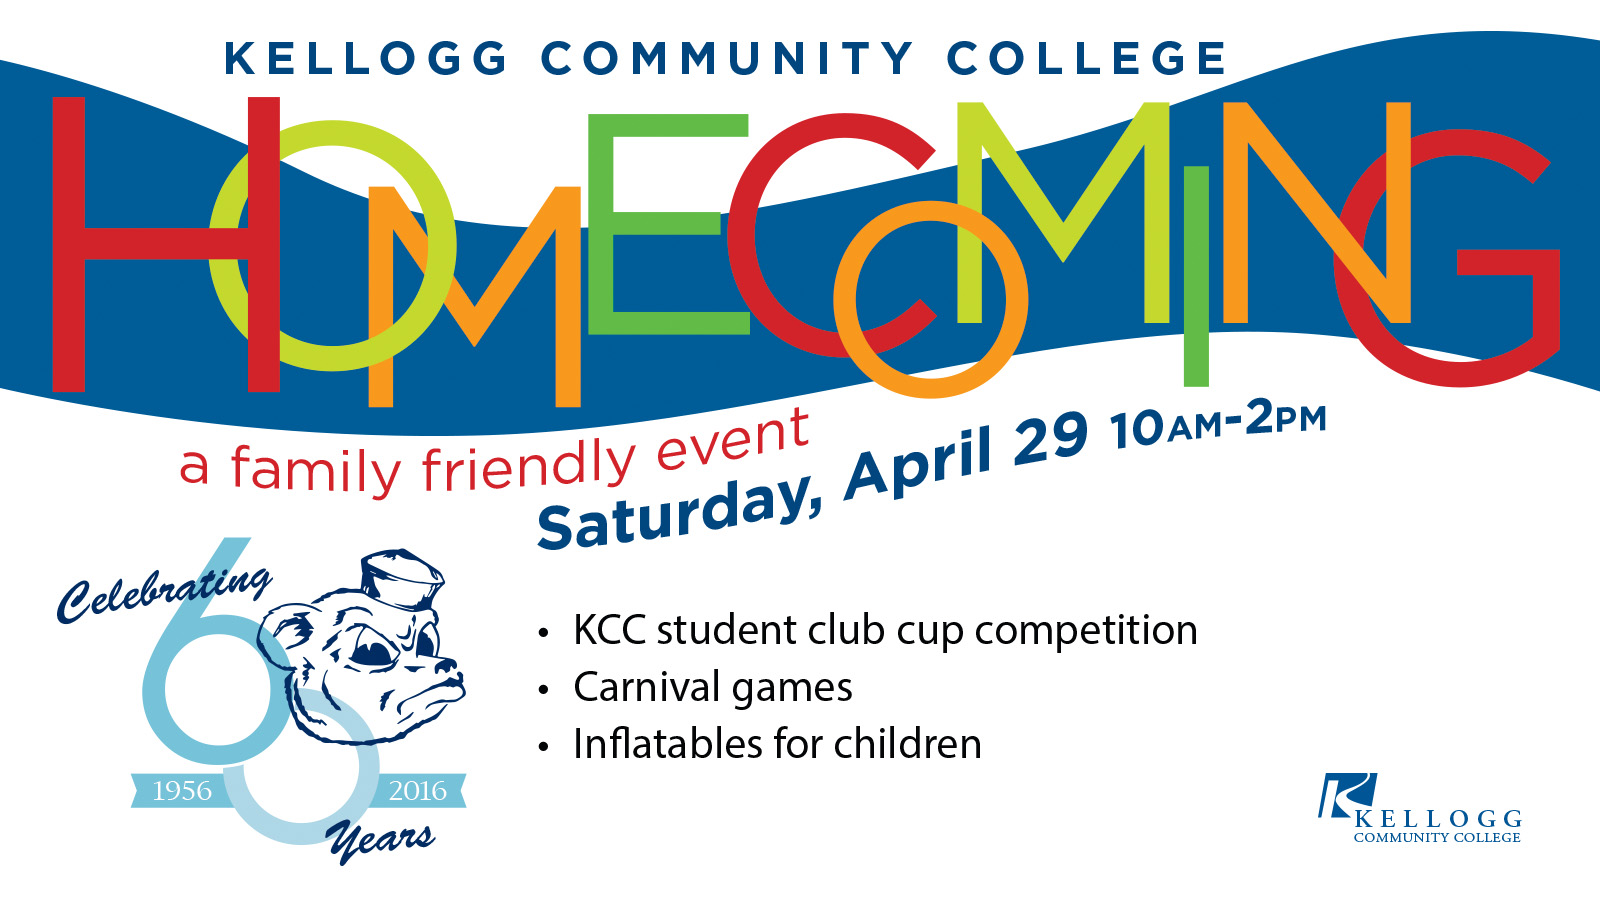 A text slide promoting KCC's Homecoming event, scheduled for 10 a.m. to 2 p.m. April 29.